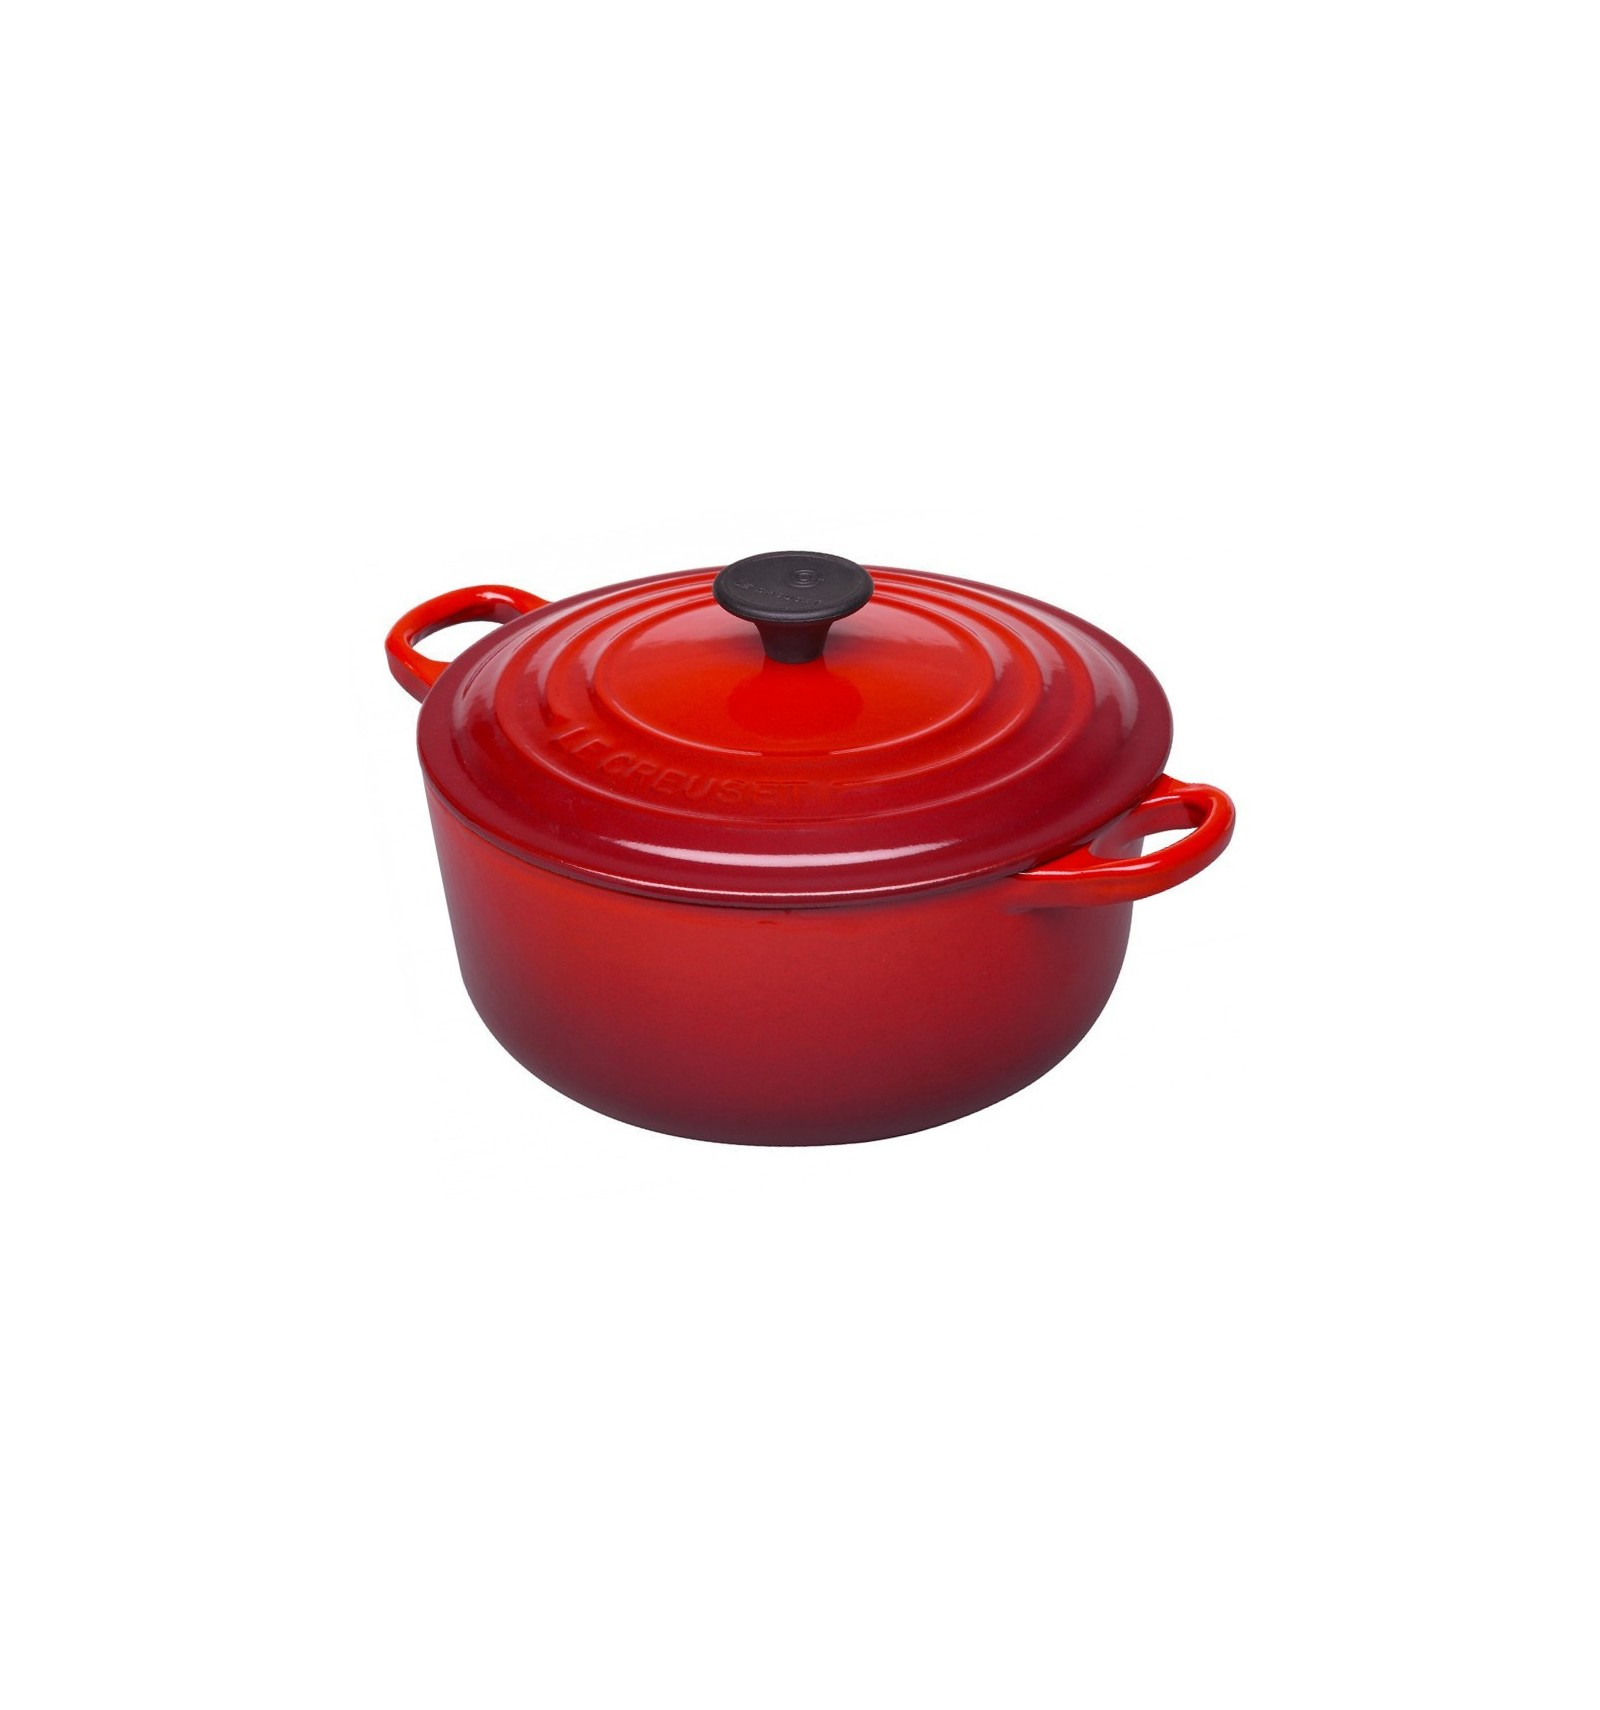 dating le creuset Le creuset signature enameled cast-iron oval french oven this updated kitchen classic enhances the cooking process by evenly distributing heat and locking in the optimal amount of moisture with ergonomic handles and an advanced interior enamel that resists chipping and cleans easily, le creuset's dutch ovens blend the best of the past with the .